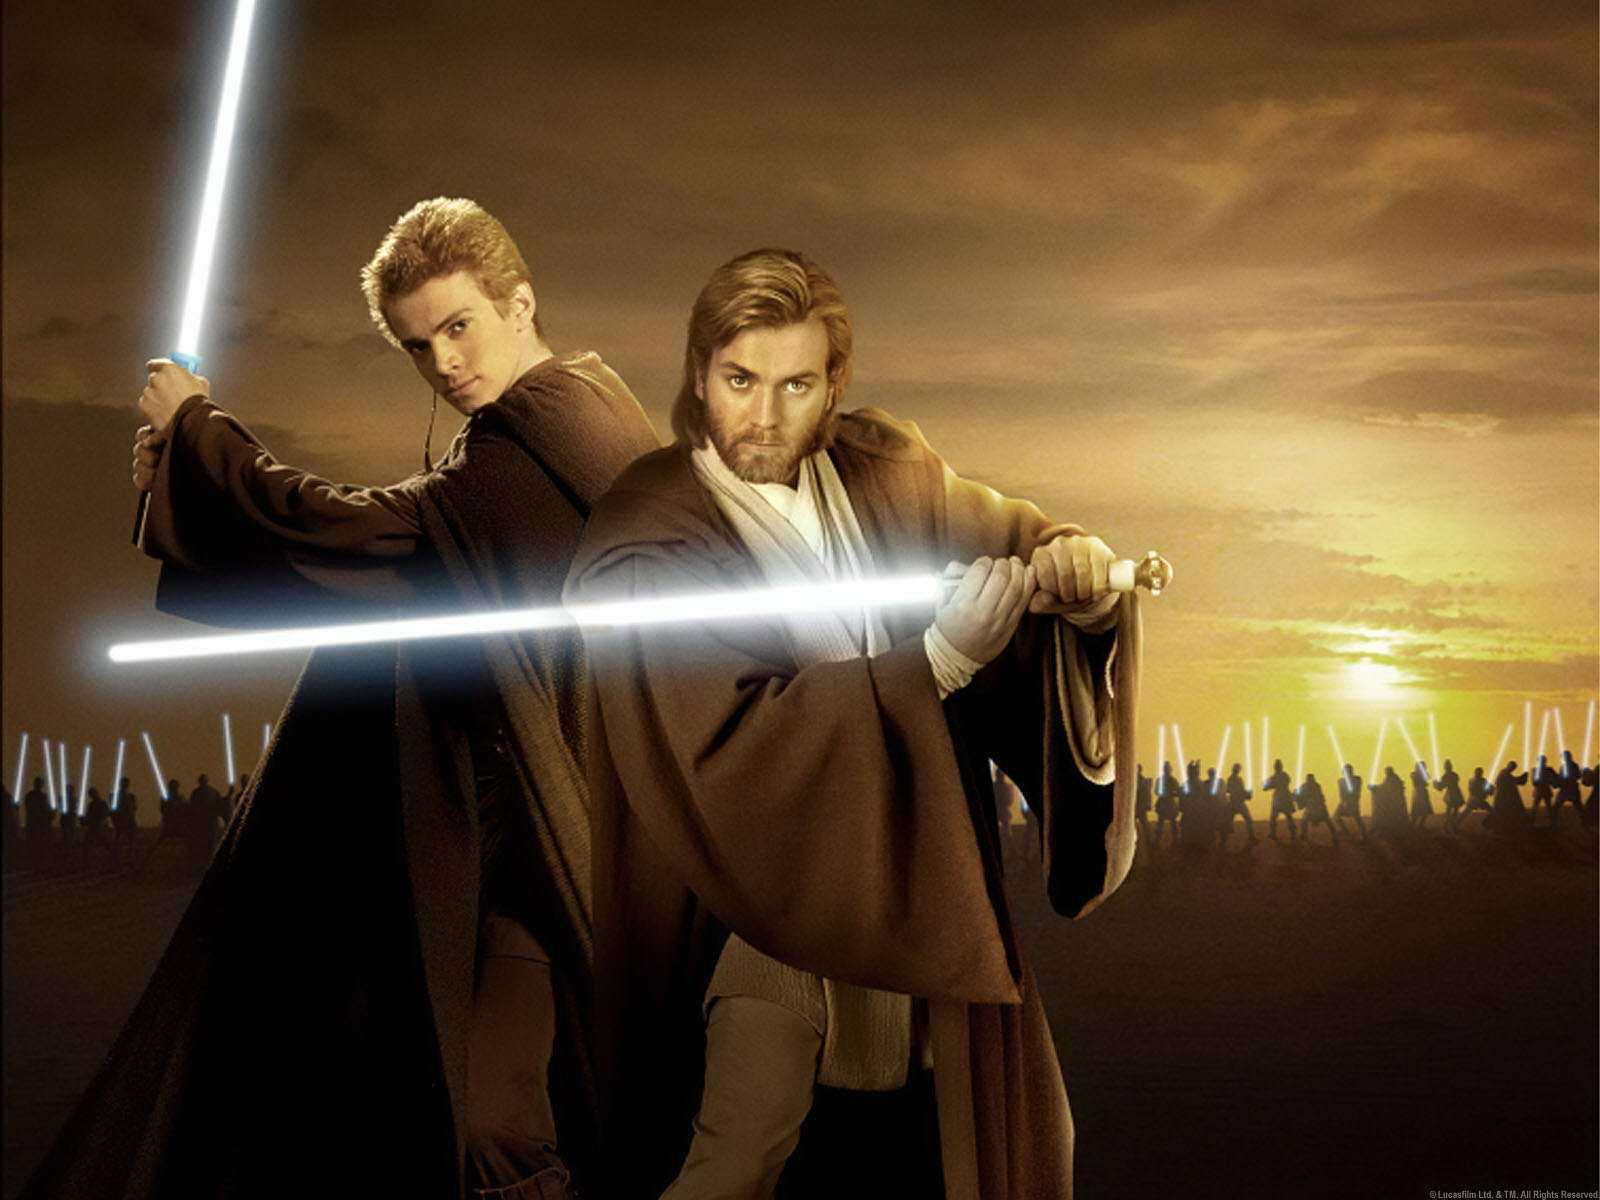 Anakin and Obi wan   obi wan kenobi and Anakin skywalker Wallpaper 1600x1200